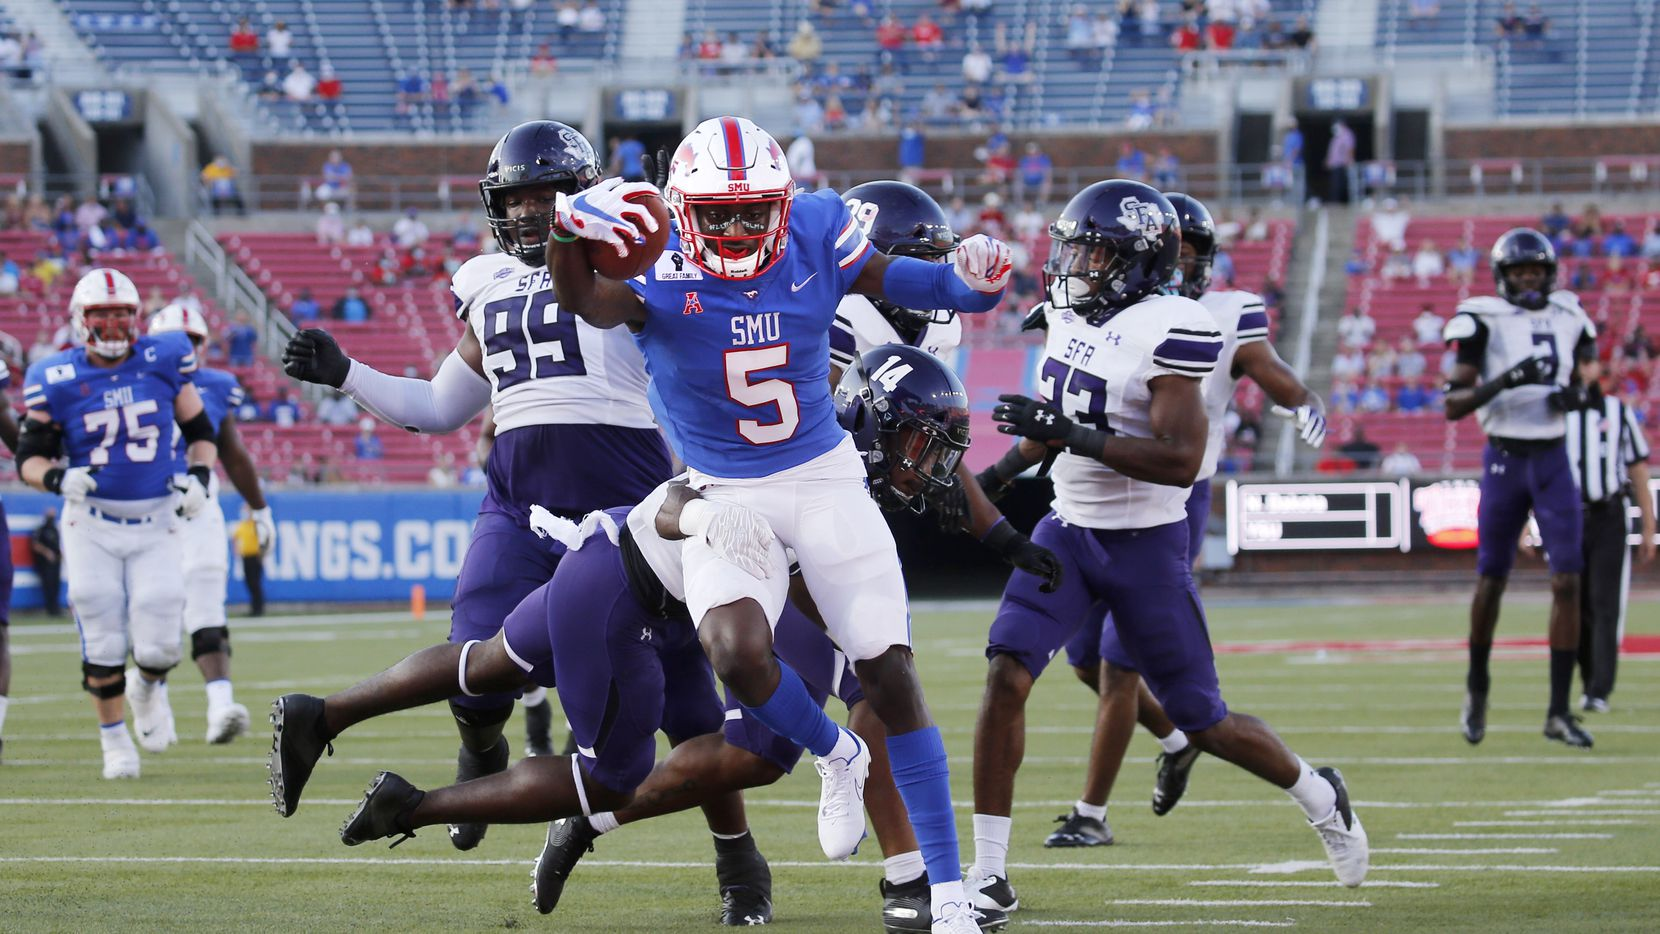 Southern Methodist Mustangs wide receiver Danny Gray (5) scores a touchdown as Stephen F. Austin Lumberjacks defensive back Kris McCune (14) fails to stop him during the first half of their home opener at Ford Stadium in Dallas, on Saturday, September 26, 2020.